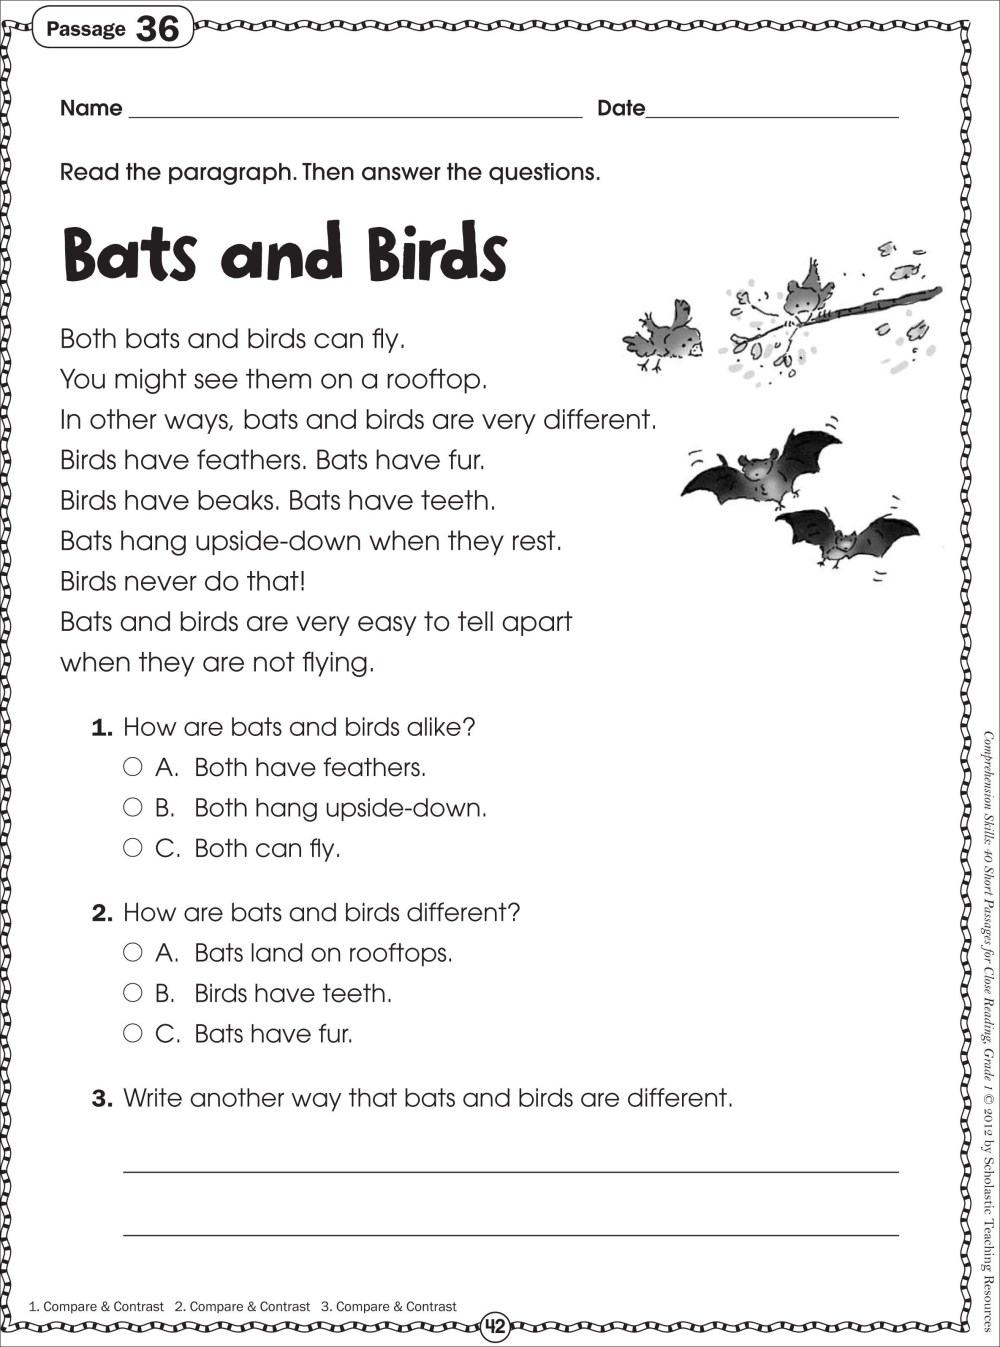 medium resolution of Basic Grade 4 Reading Comprehension Worksheet   Printable Worksheets and  Activities for Teachers